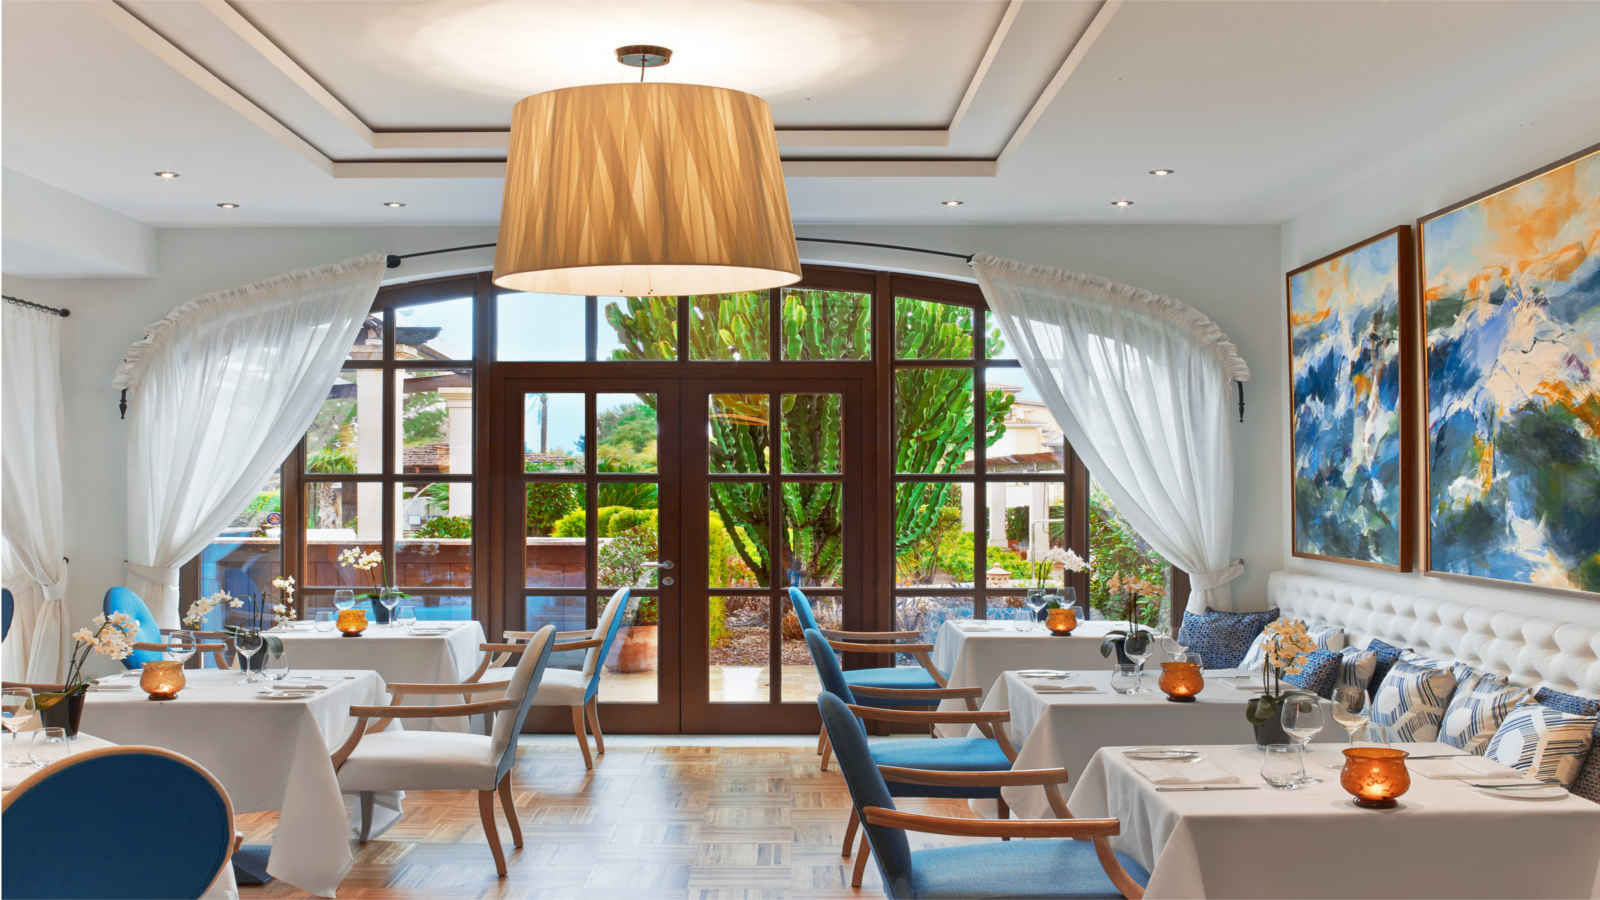 Restaurant Aqua | The St. Regis Mardavall